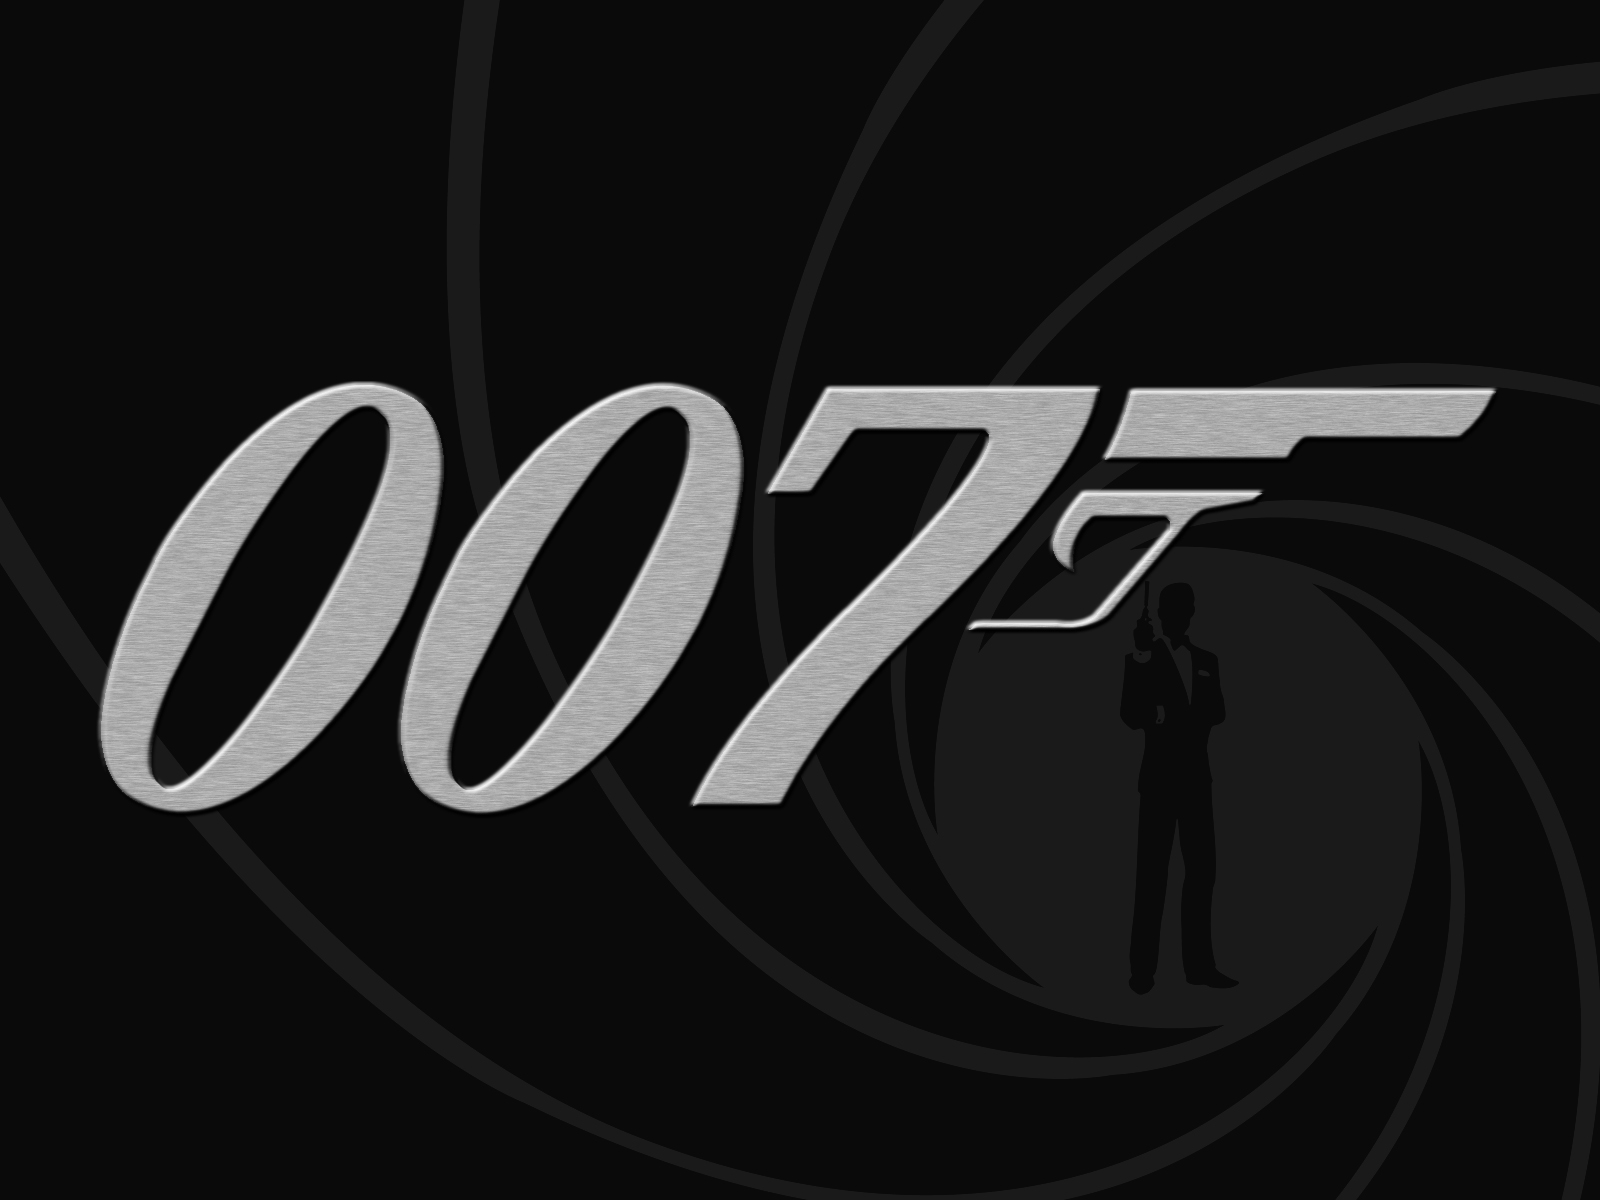 Things you didn't know about James Bond